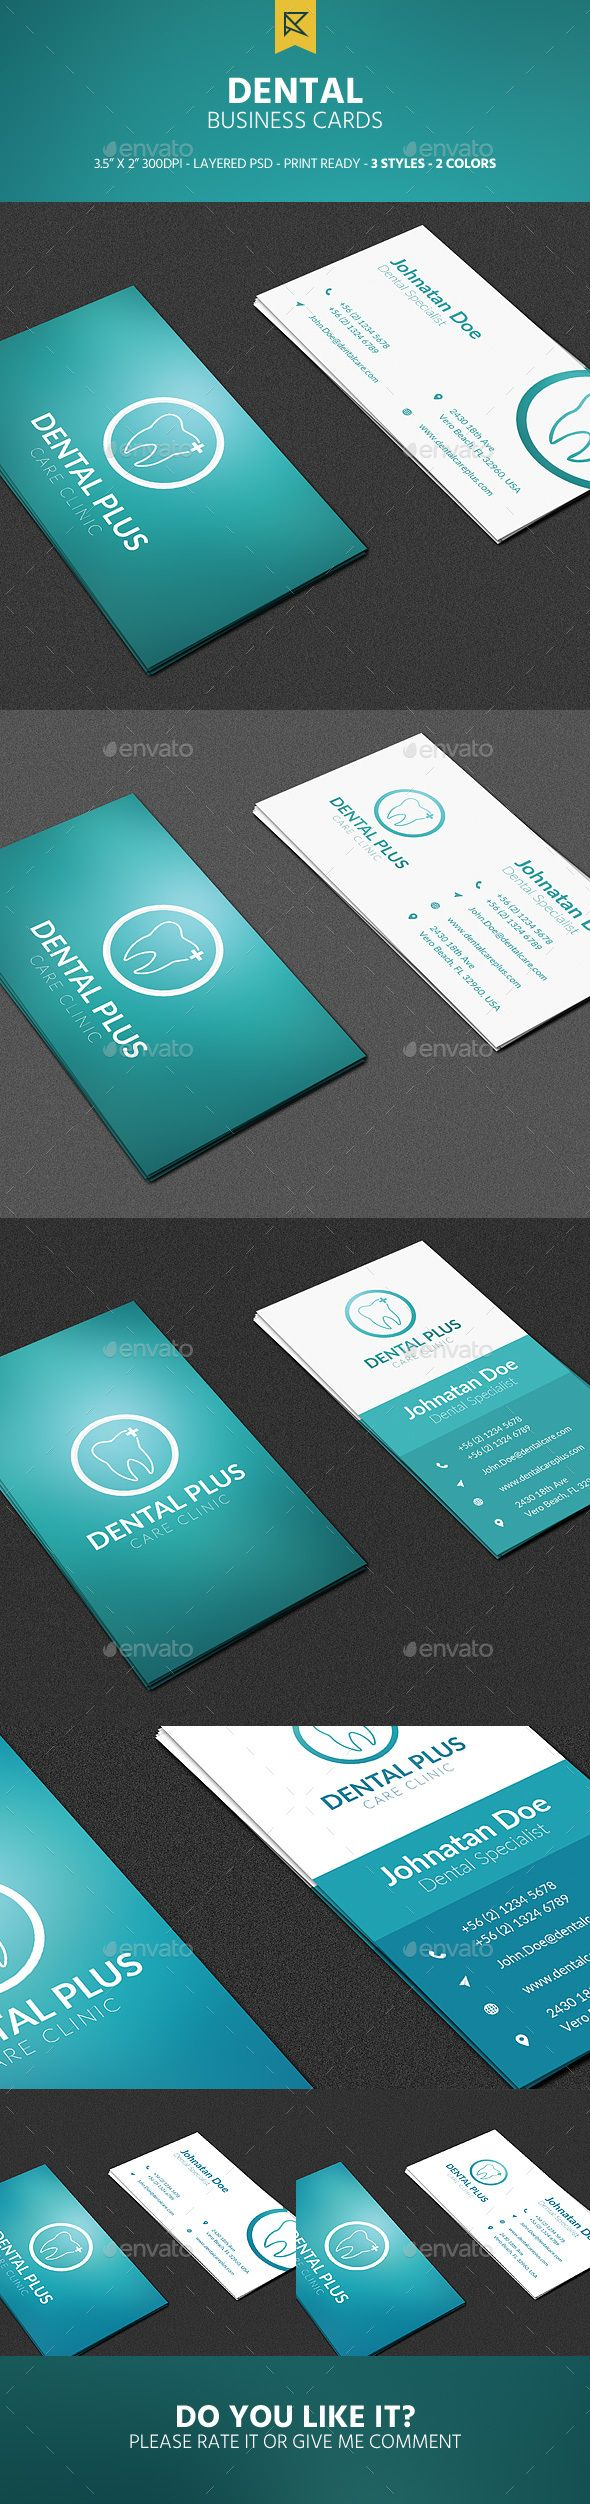 Best 25+ Dental business cards ideas on Pinterest | Dental surgeon ...